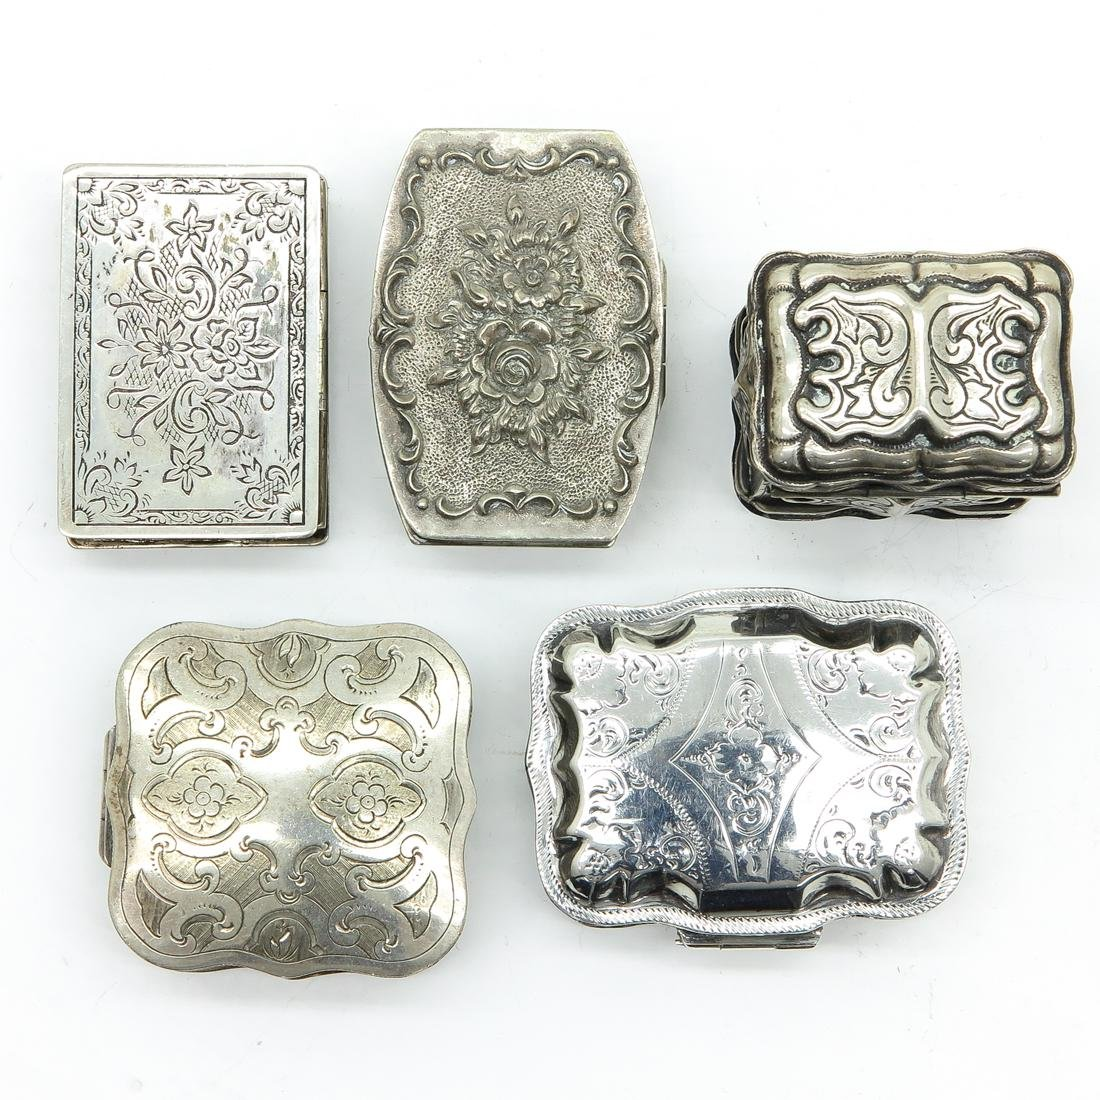 Lot of 5 Scent Boxes and Pill Boxes